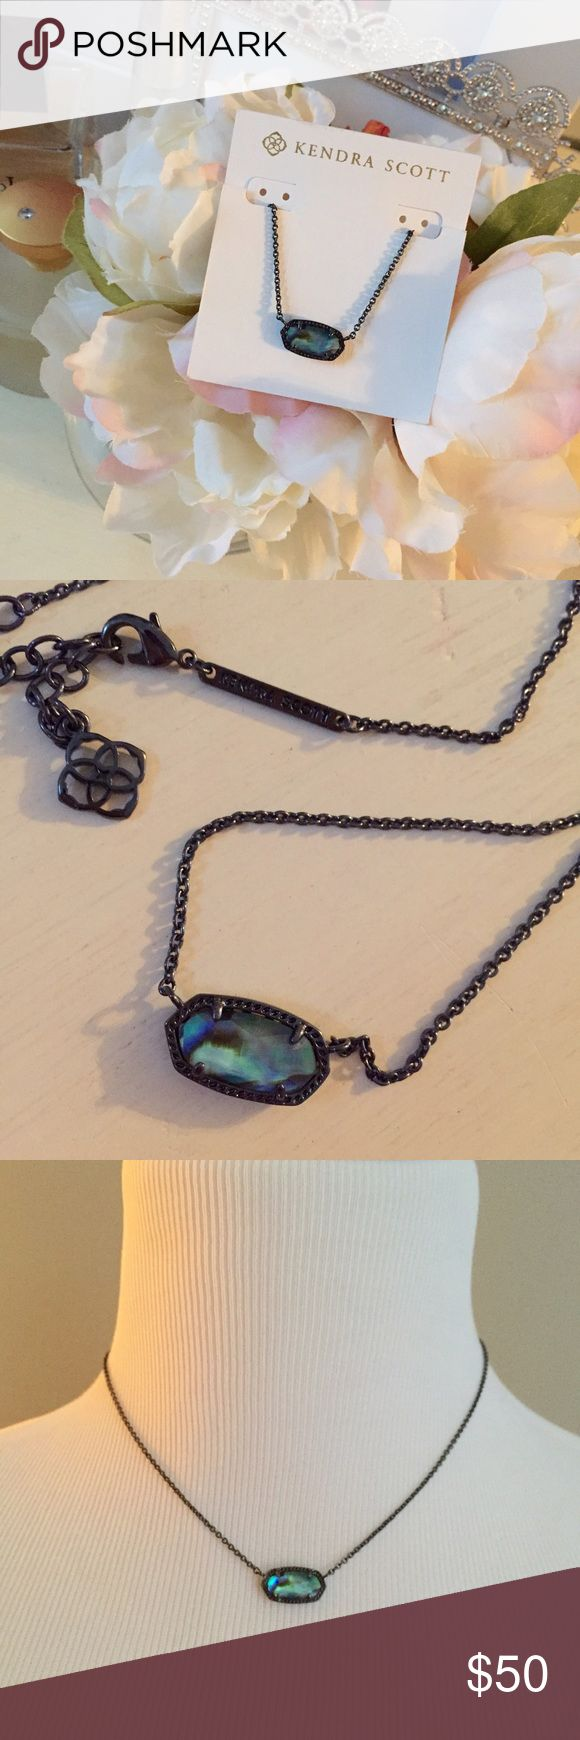 Kendra Scott Elisa necklace Gorgeous necklace by Kendra Scott is brand new and never worn. Stone is a colored mirror glass on a gunmetal chain. Kendra Scott Jewelry Necklaces